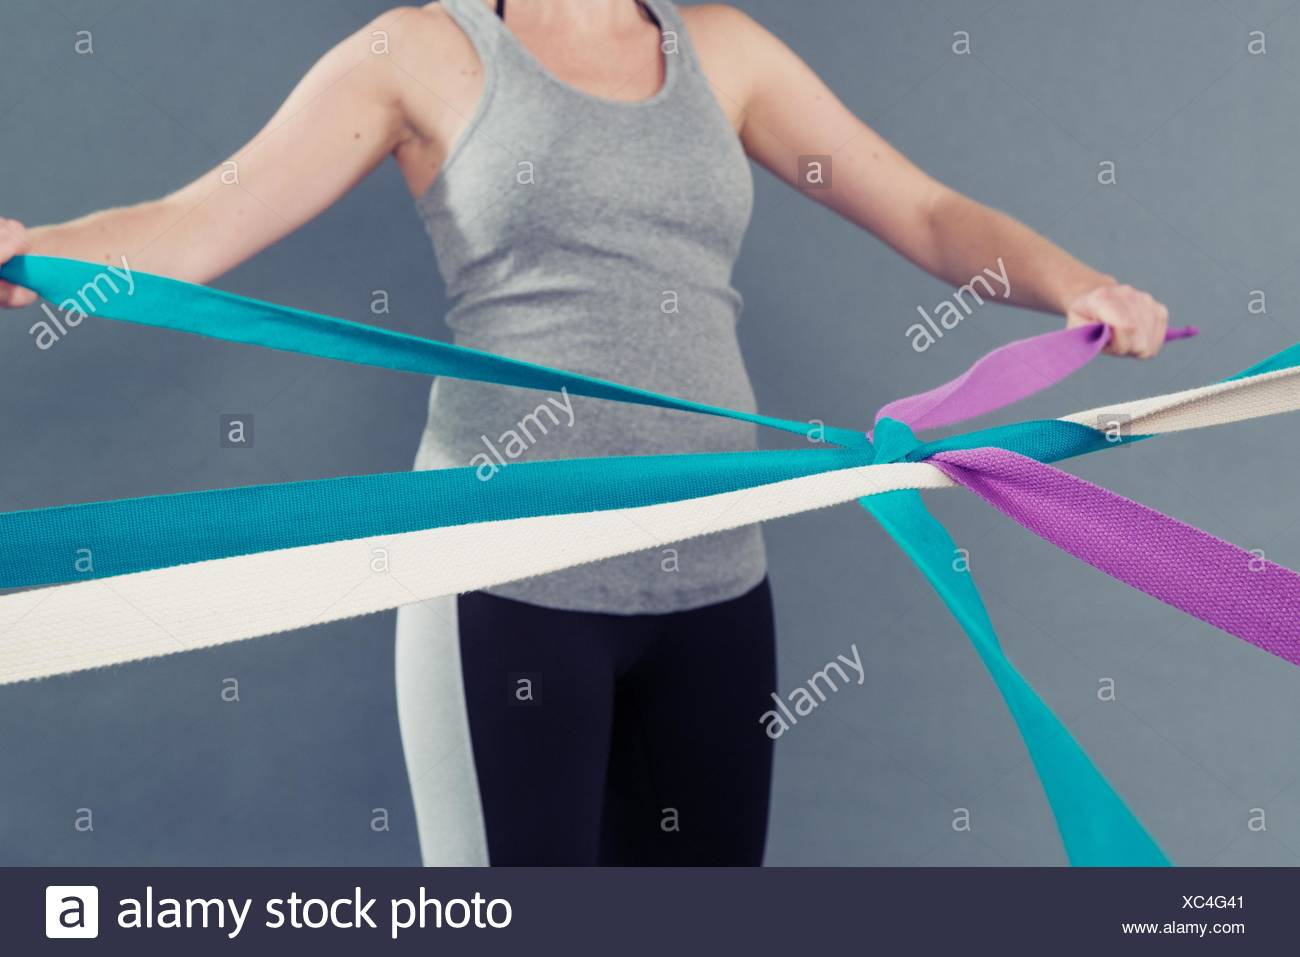 Young woman using coloured bands, grey background - Stock Image